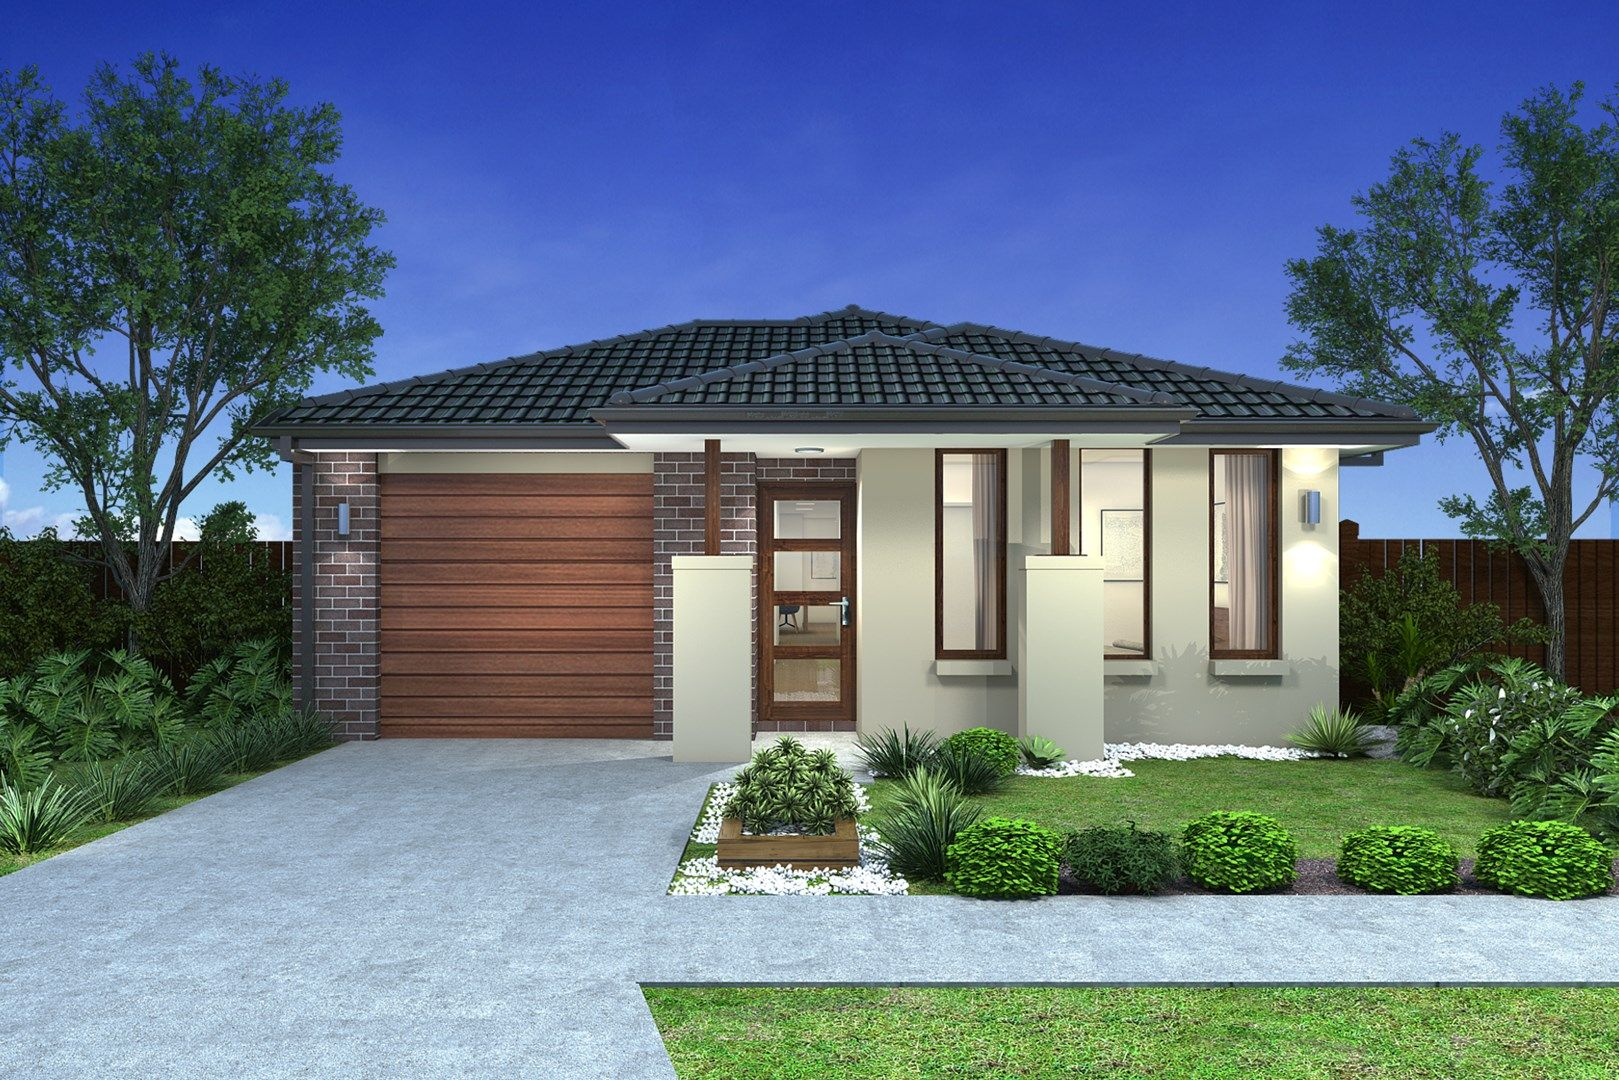 LOT 160 PLATFORM ESTATE, Donnybrook VIC 3064, Image 0